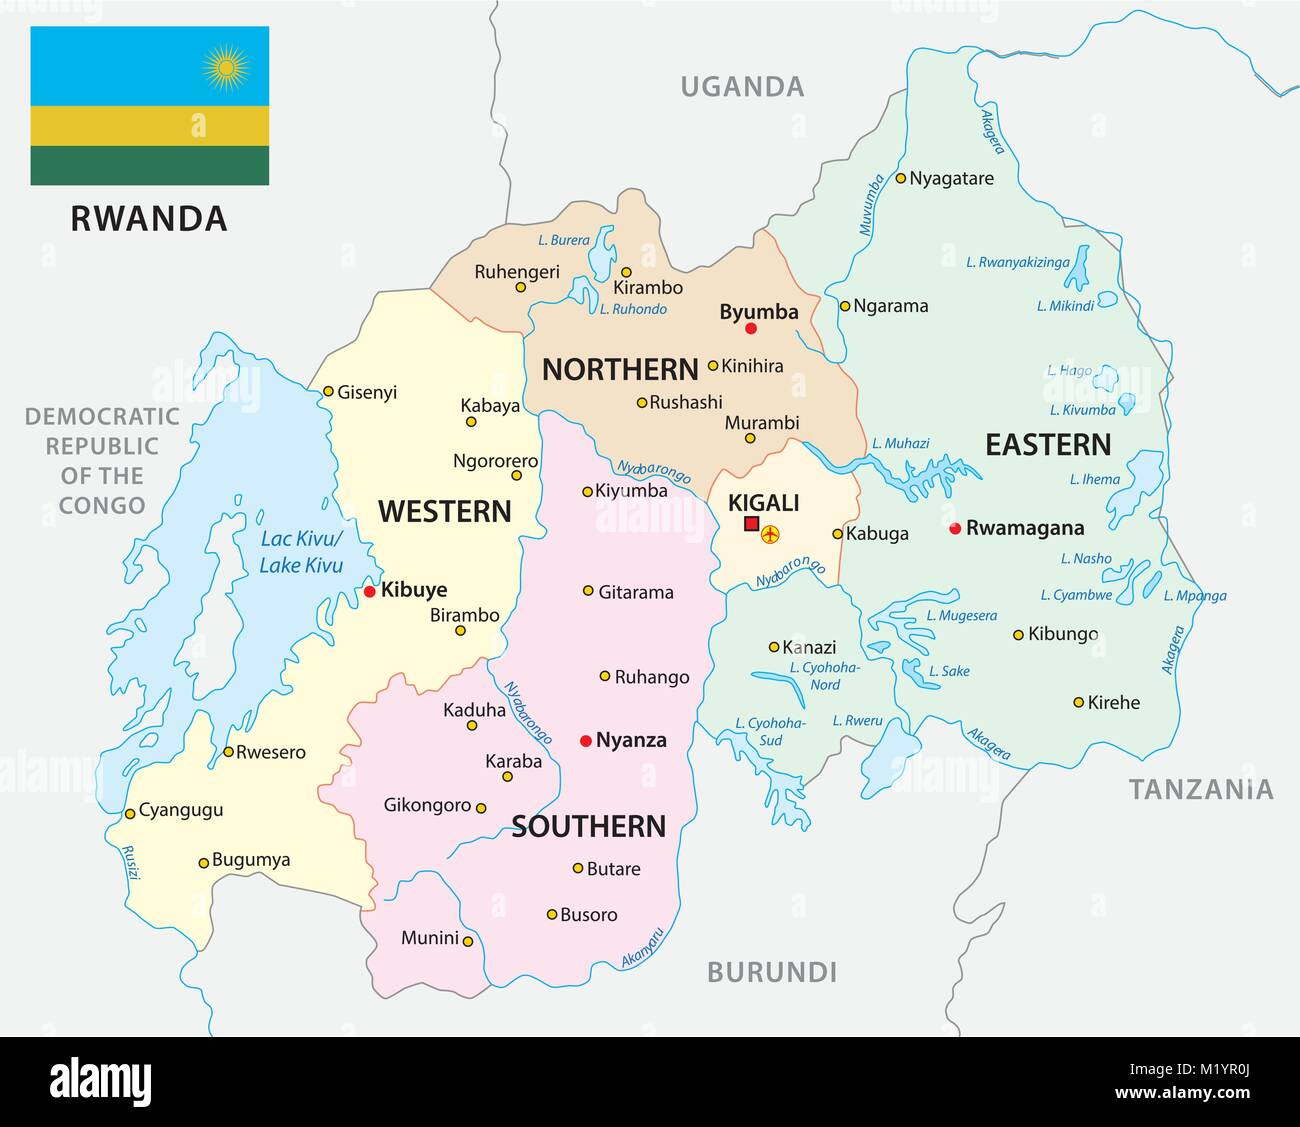 rwanda administrative and political vector map with flag - Stock Vector